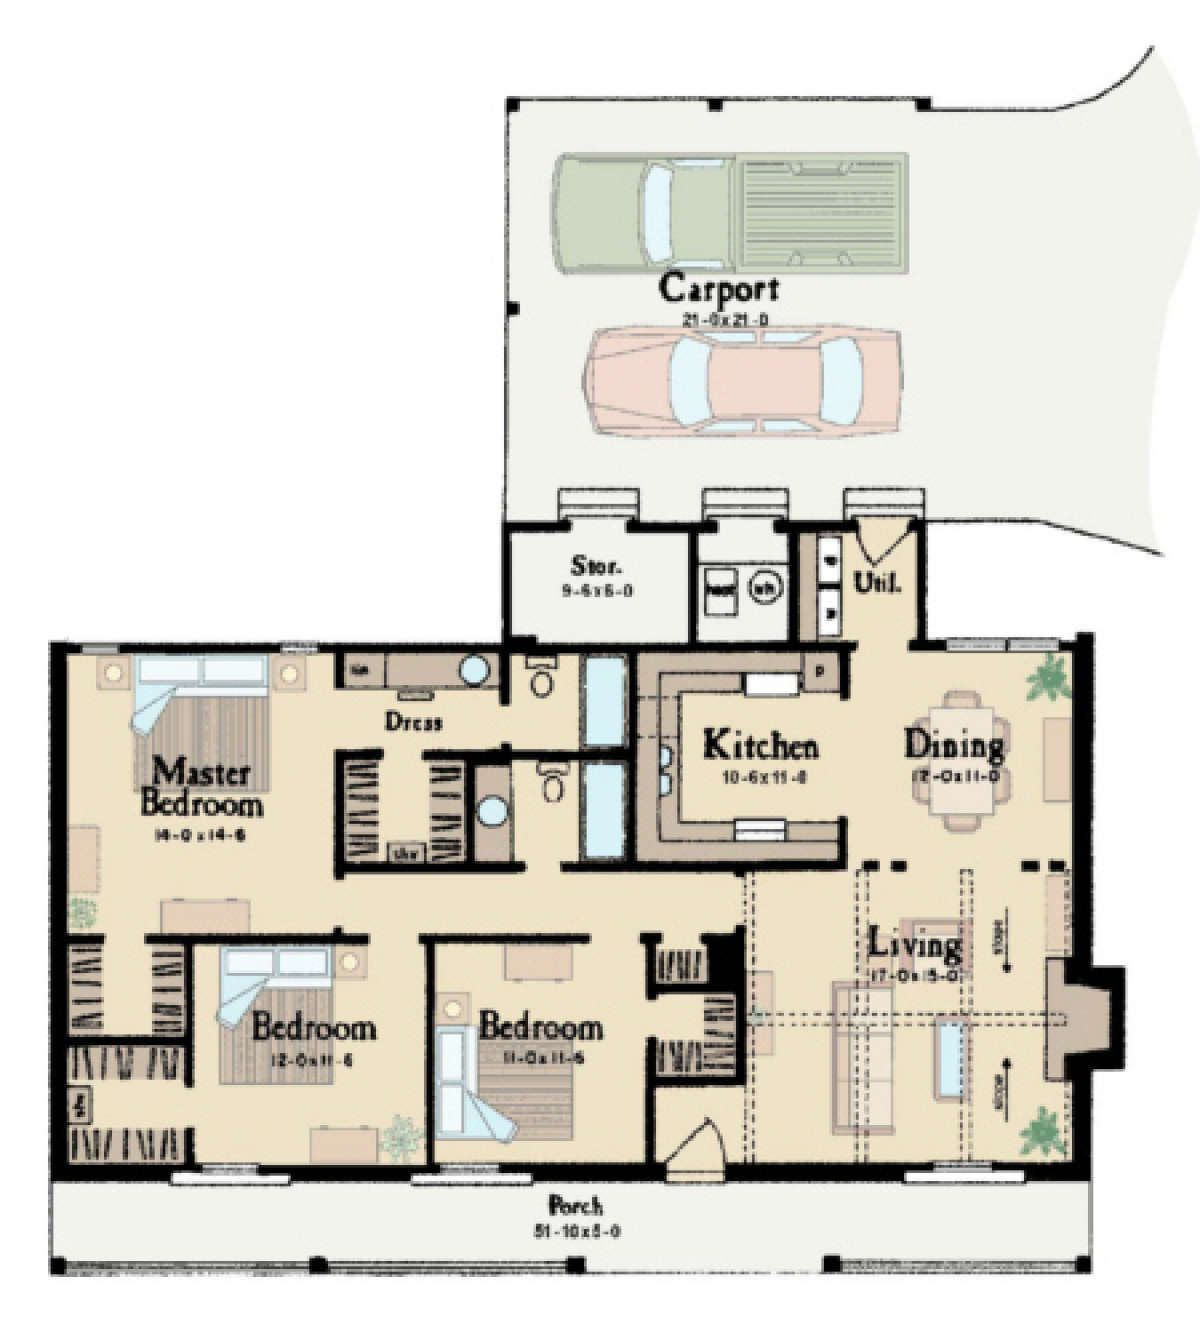 House Plan 046 00031 Ranch Plan 1 365 Square Feet 3 Bedrooms 2 Bathrooms House Plans Country Floor Plans Floor Plans